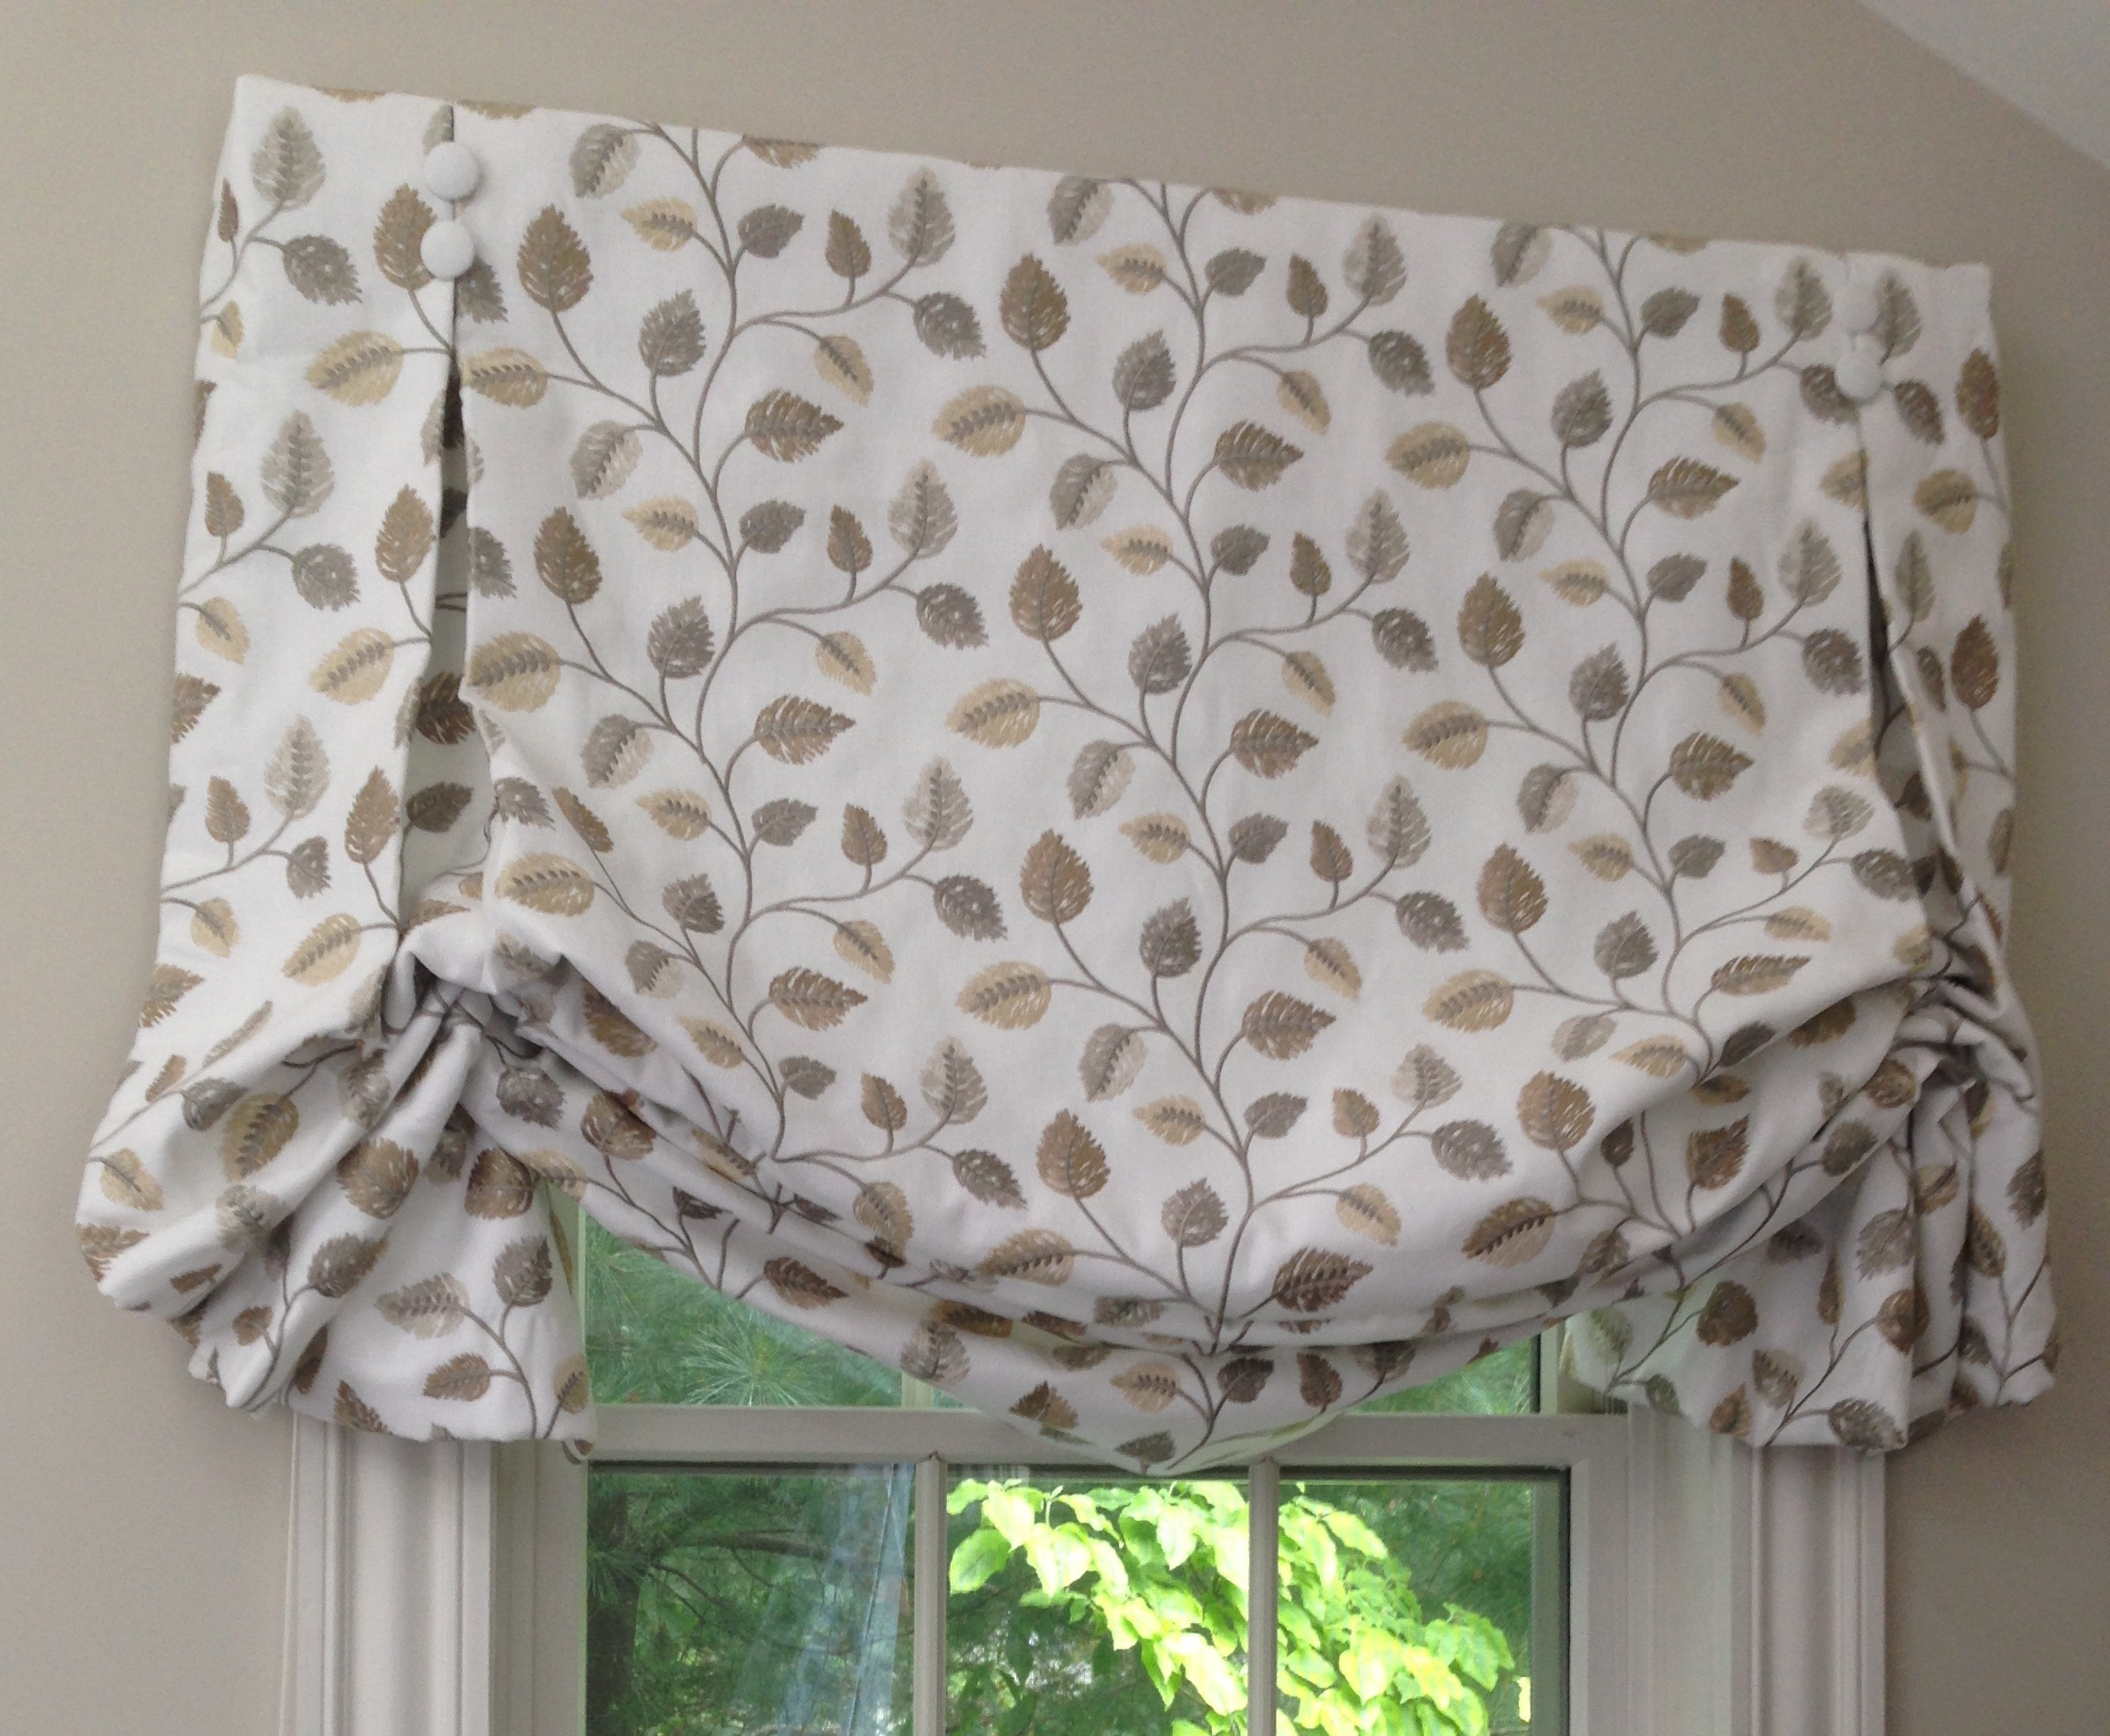 This outside mount, lined and interlined, custom soft Roman shade has fabric that wraps around the ends of the board to the wall. Inverted pleats held at the top by covered buttons were added for a softer, fuller profile.